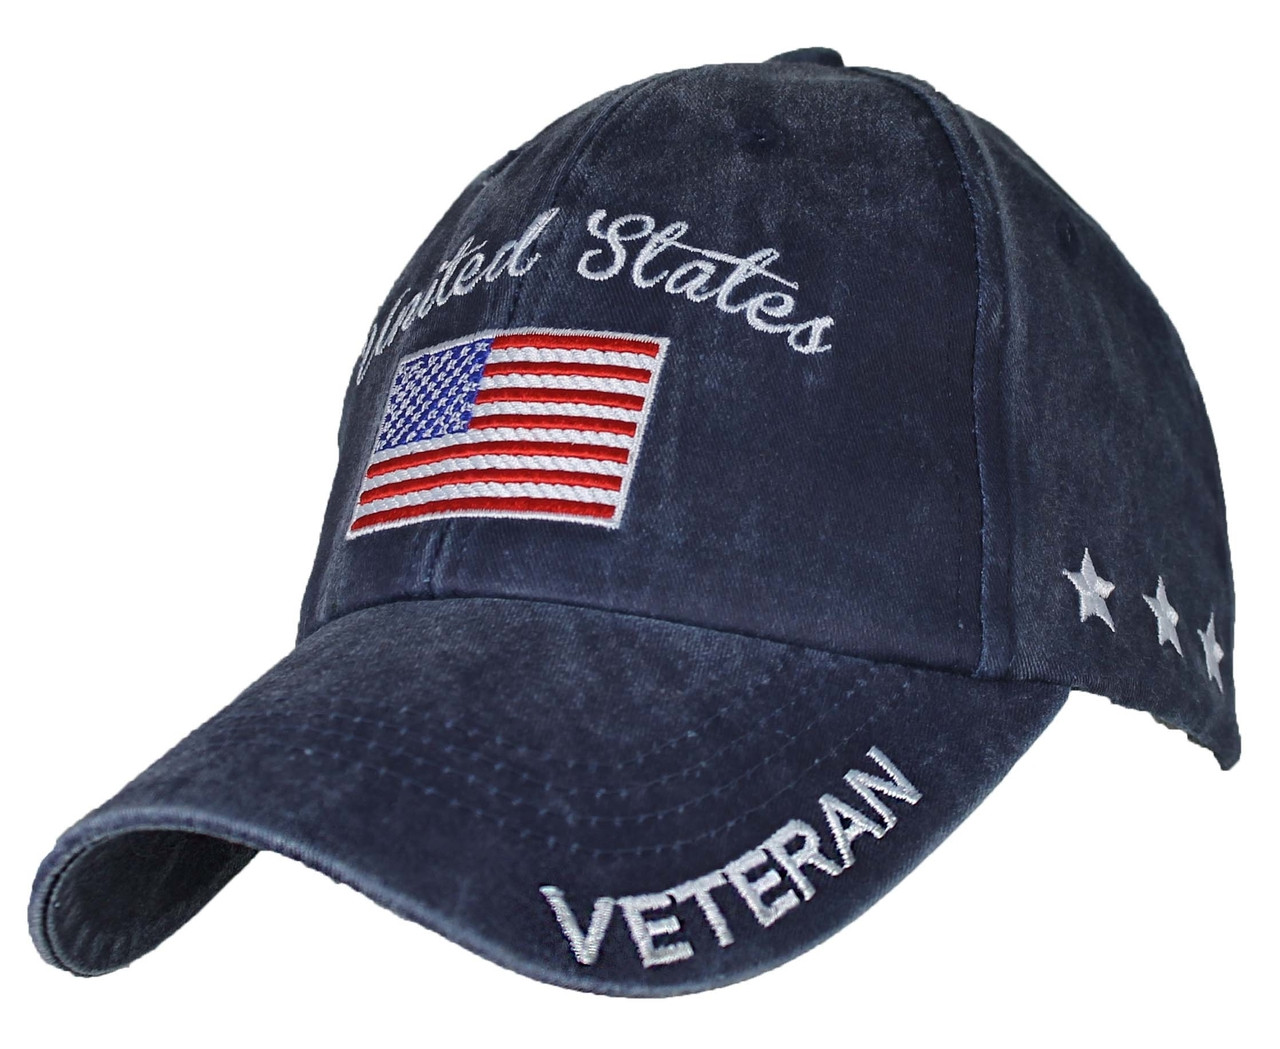 523d93c8e4b8f US Military Veteran - U.S. Military with Flag Washed Navy Blue Baseball Cap  Hat